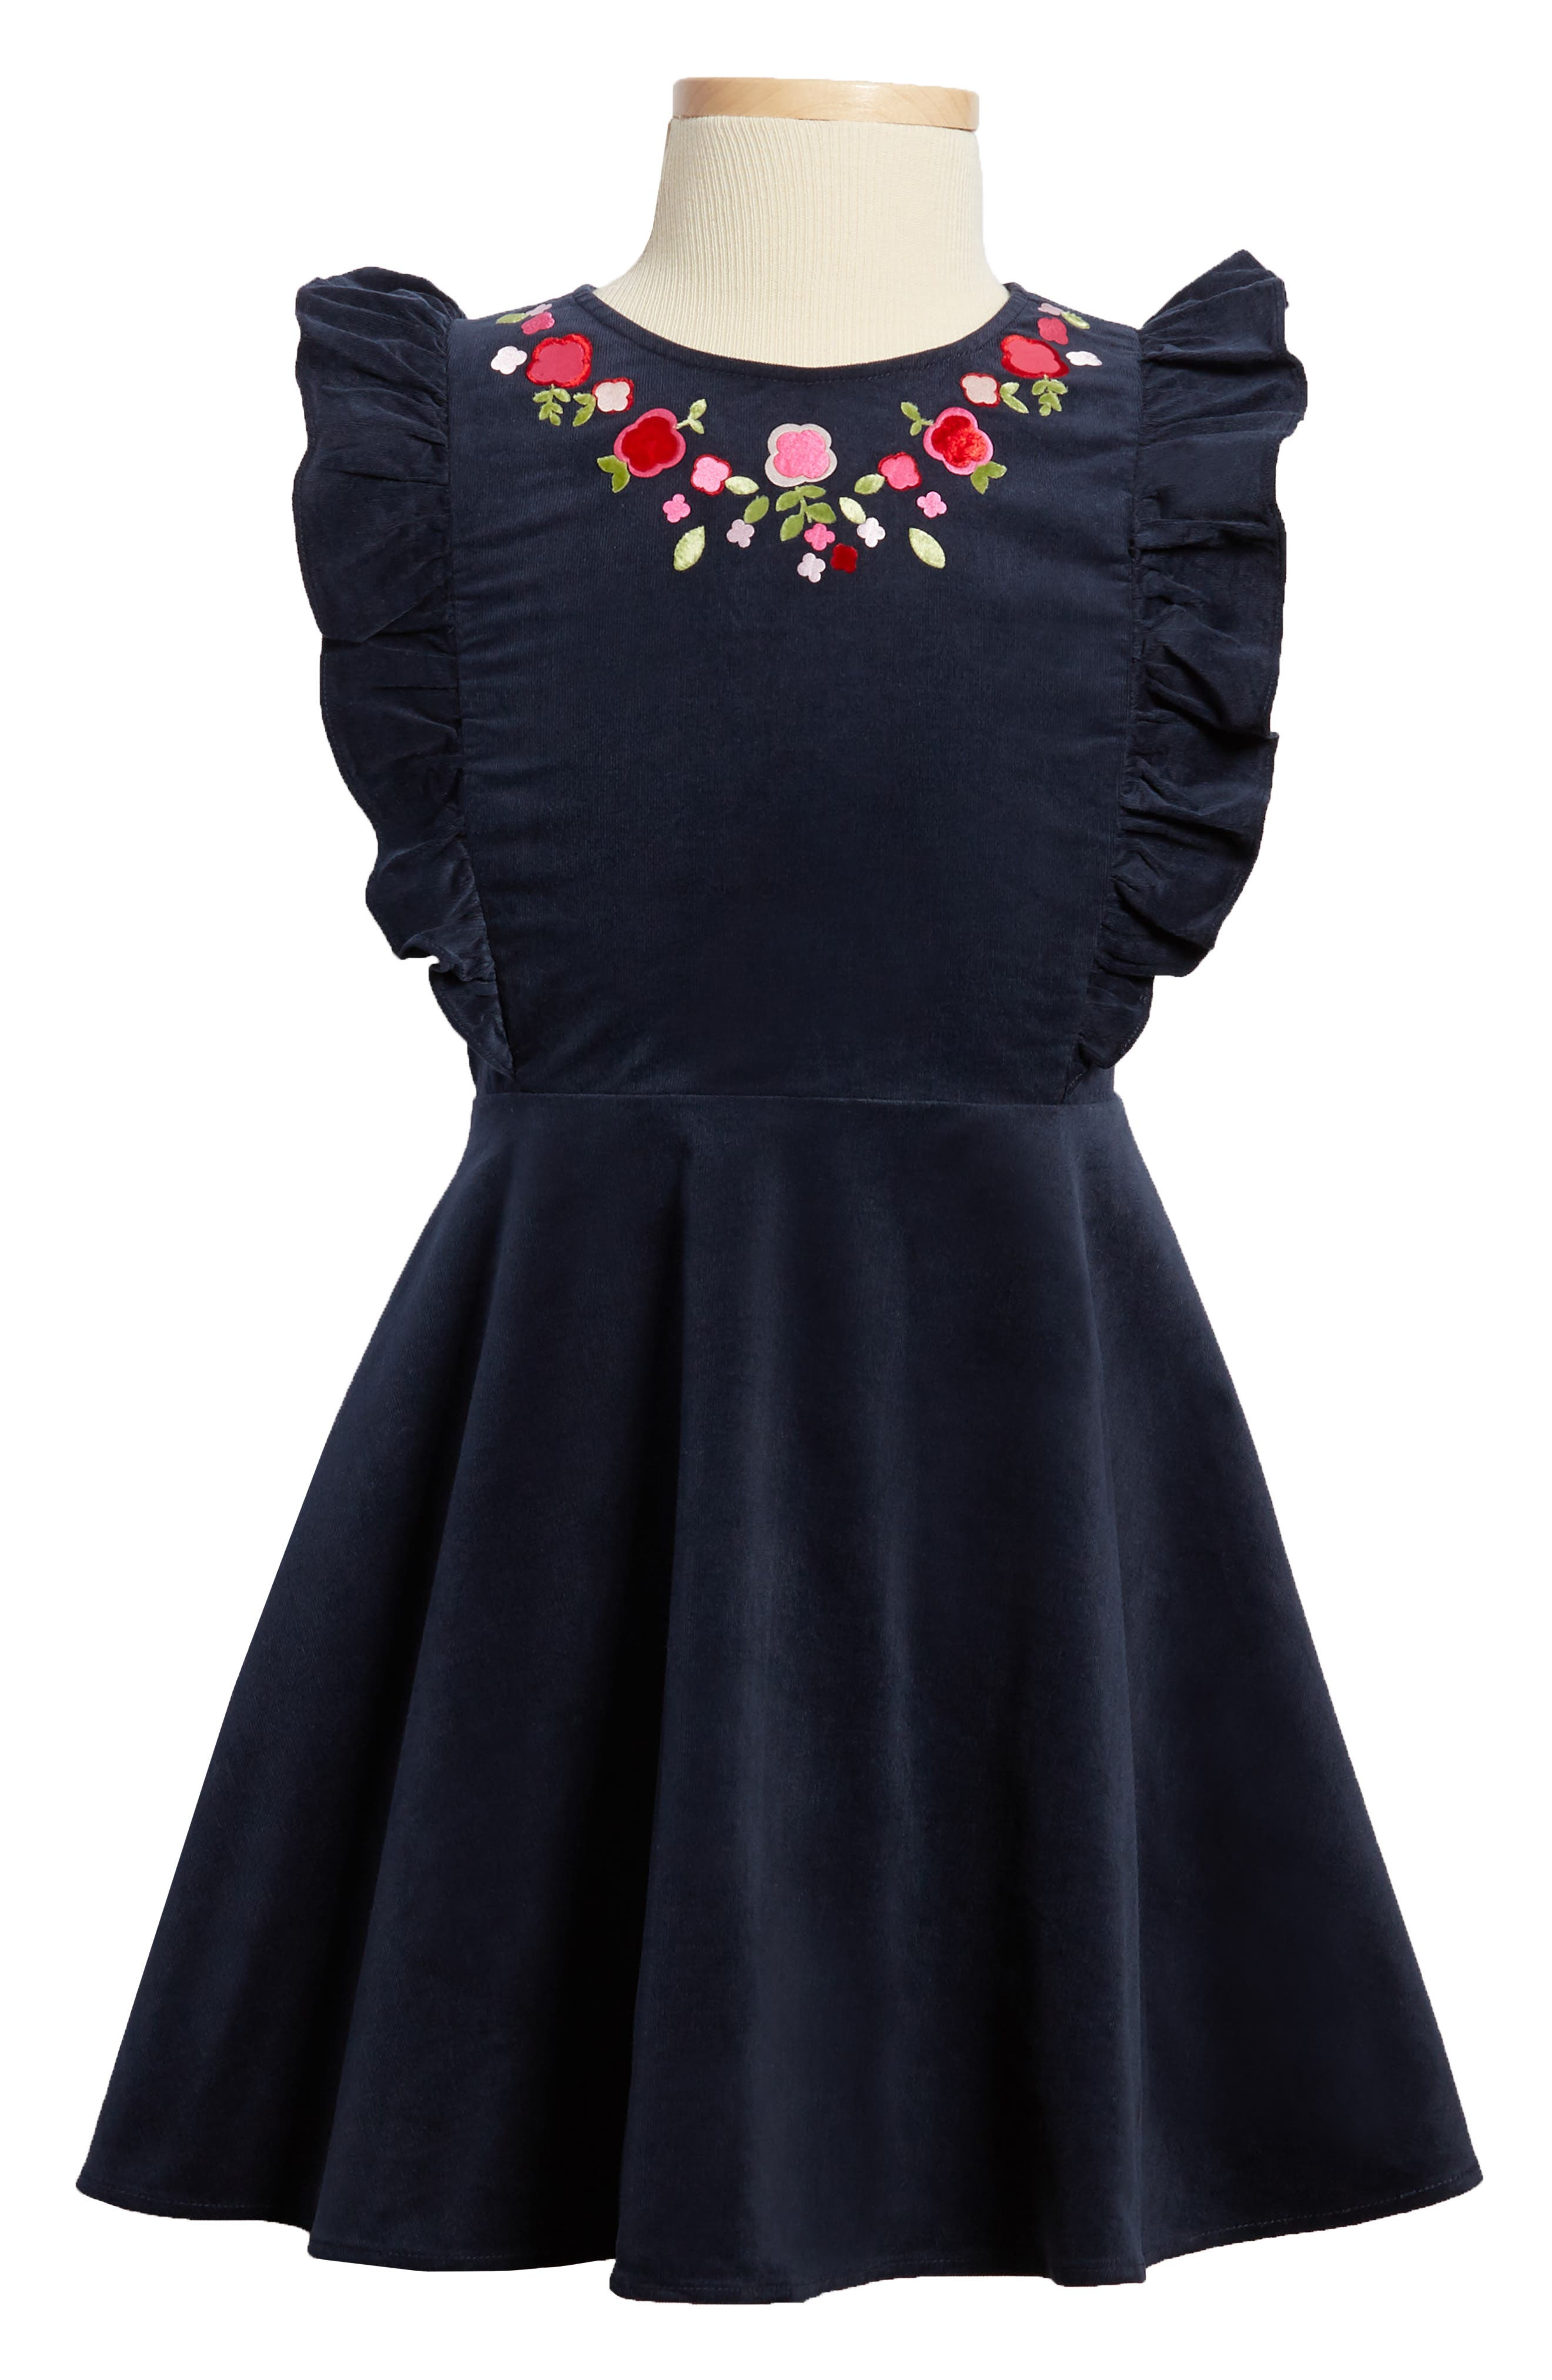 Floral Embroidered Corduroy Dress,                         Main,                         color, 419